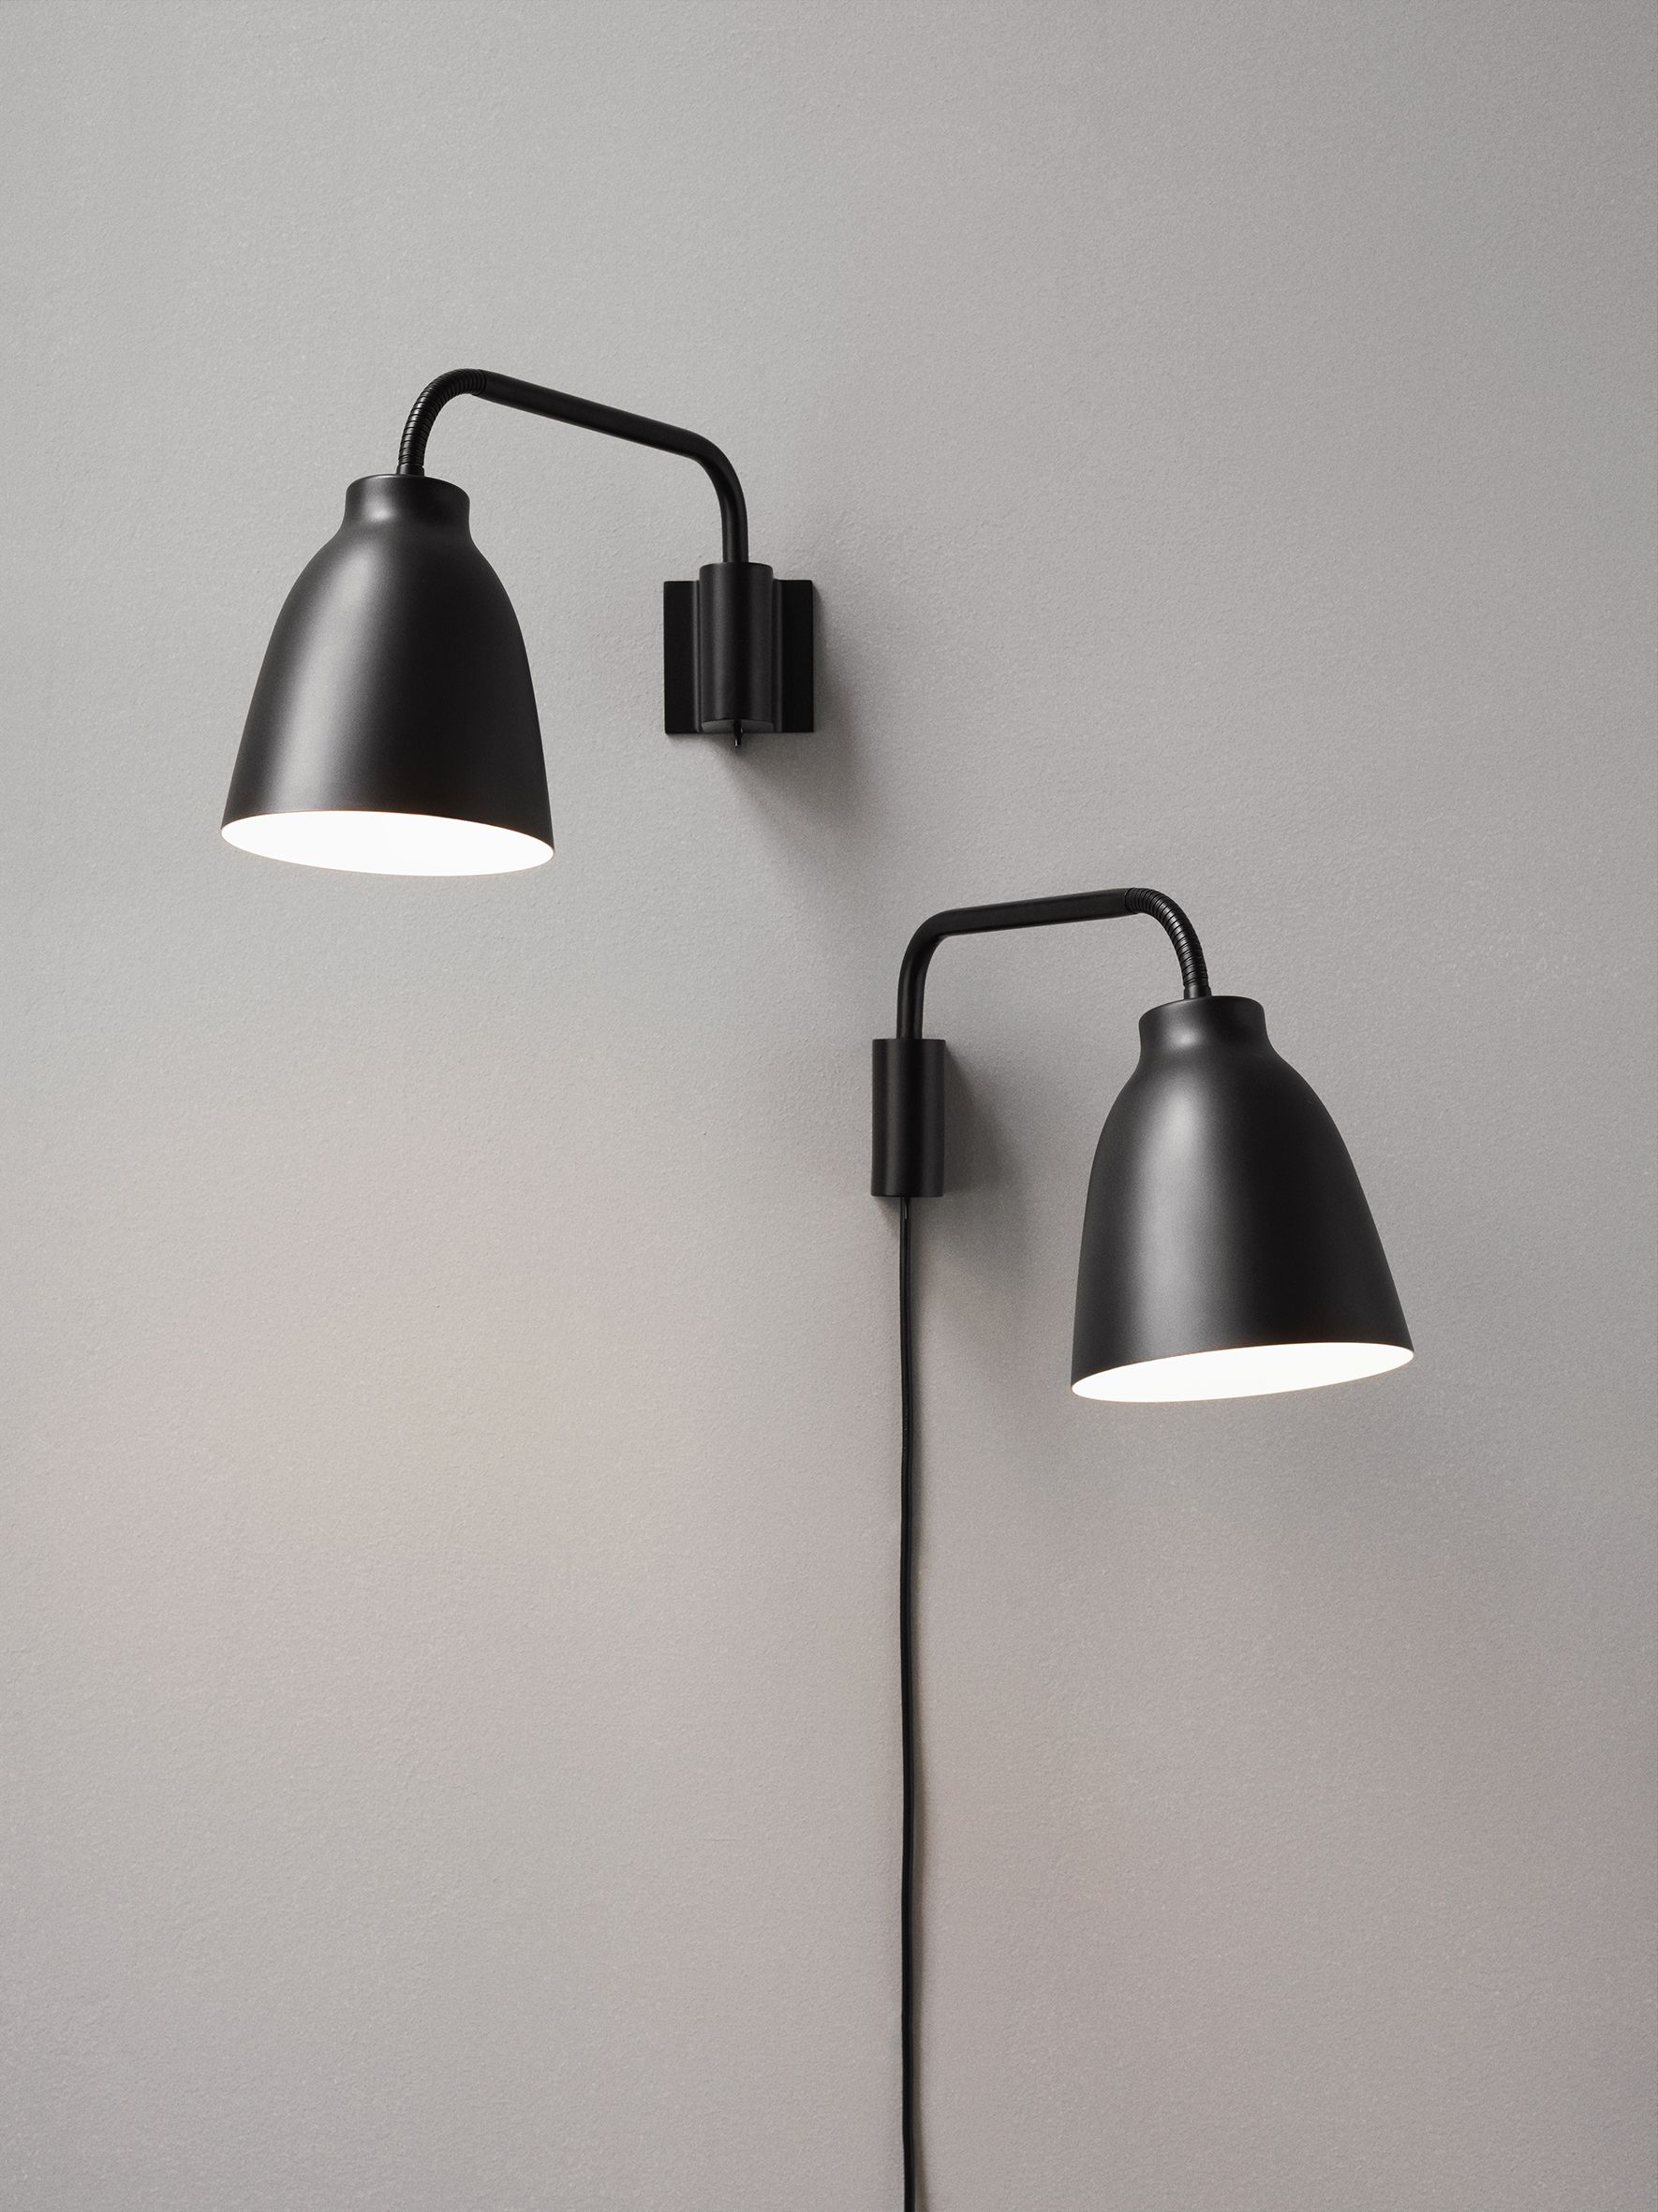 Zwarte caravaggio wandlamp ontworpen door cecilie manz en gemaakt the caravaggio wall lamp was designed by cecilie manz for lightyearse caravaggio wall lamp belongs to the collection of danish design lighting from aloadofball Image collections